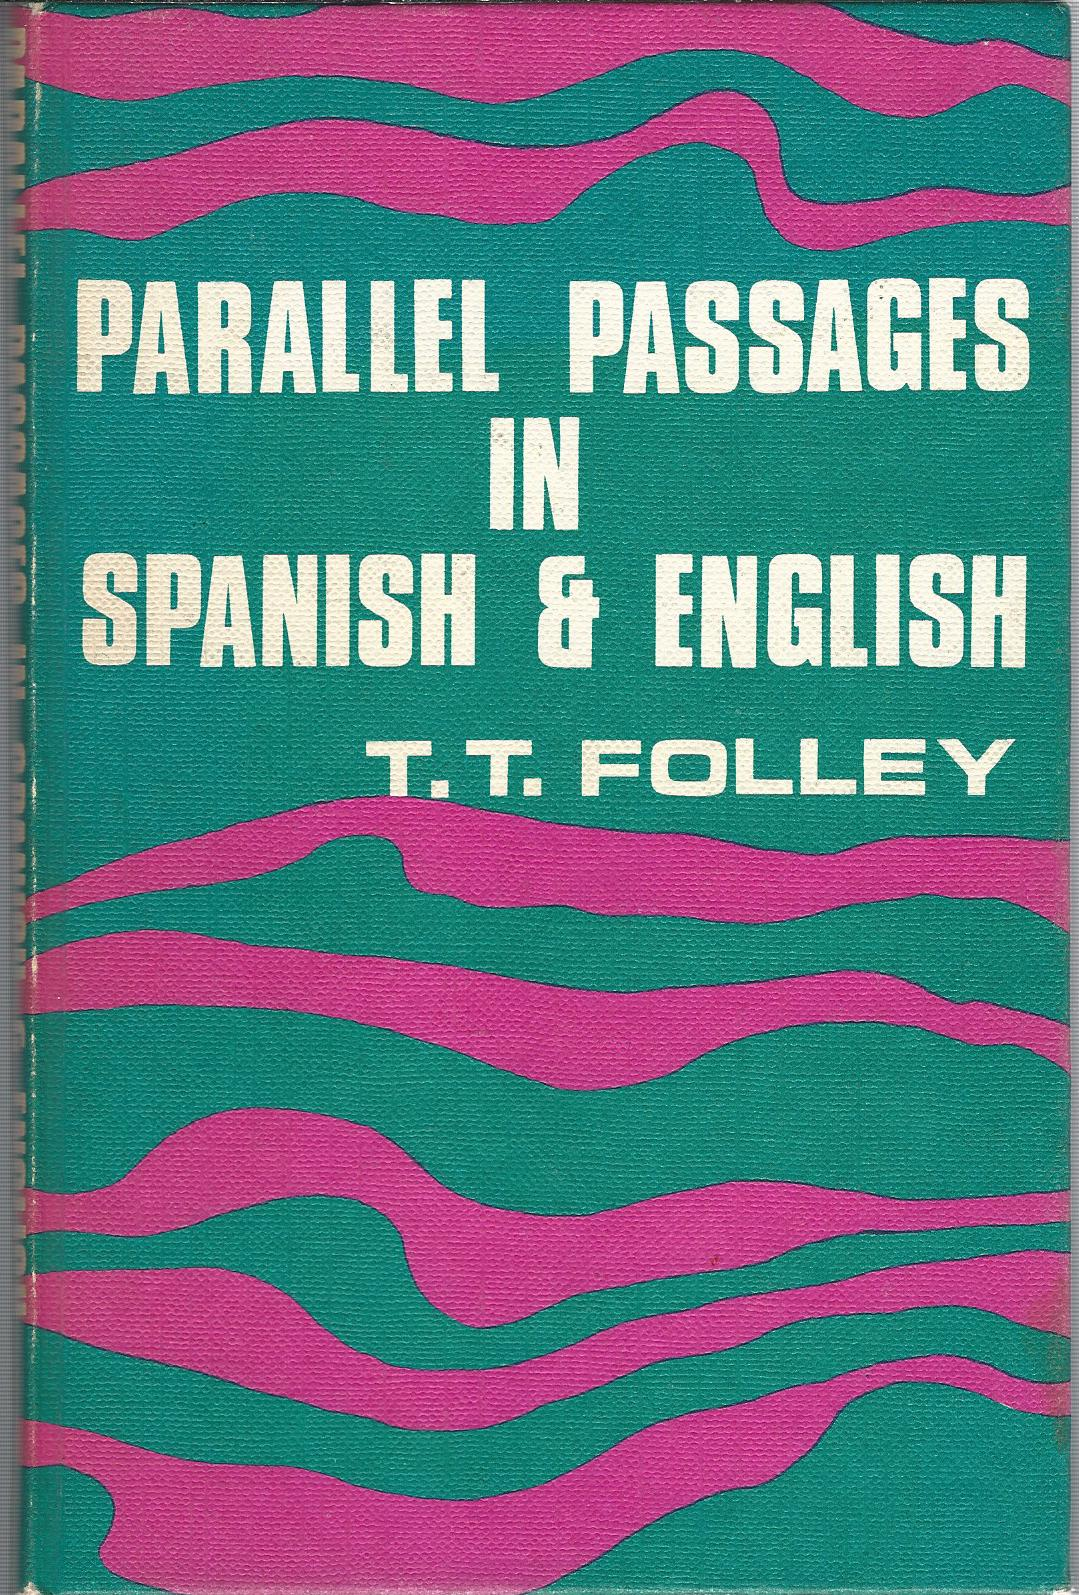 Image for Parallel Passages in Spanish & English.